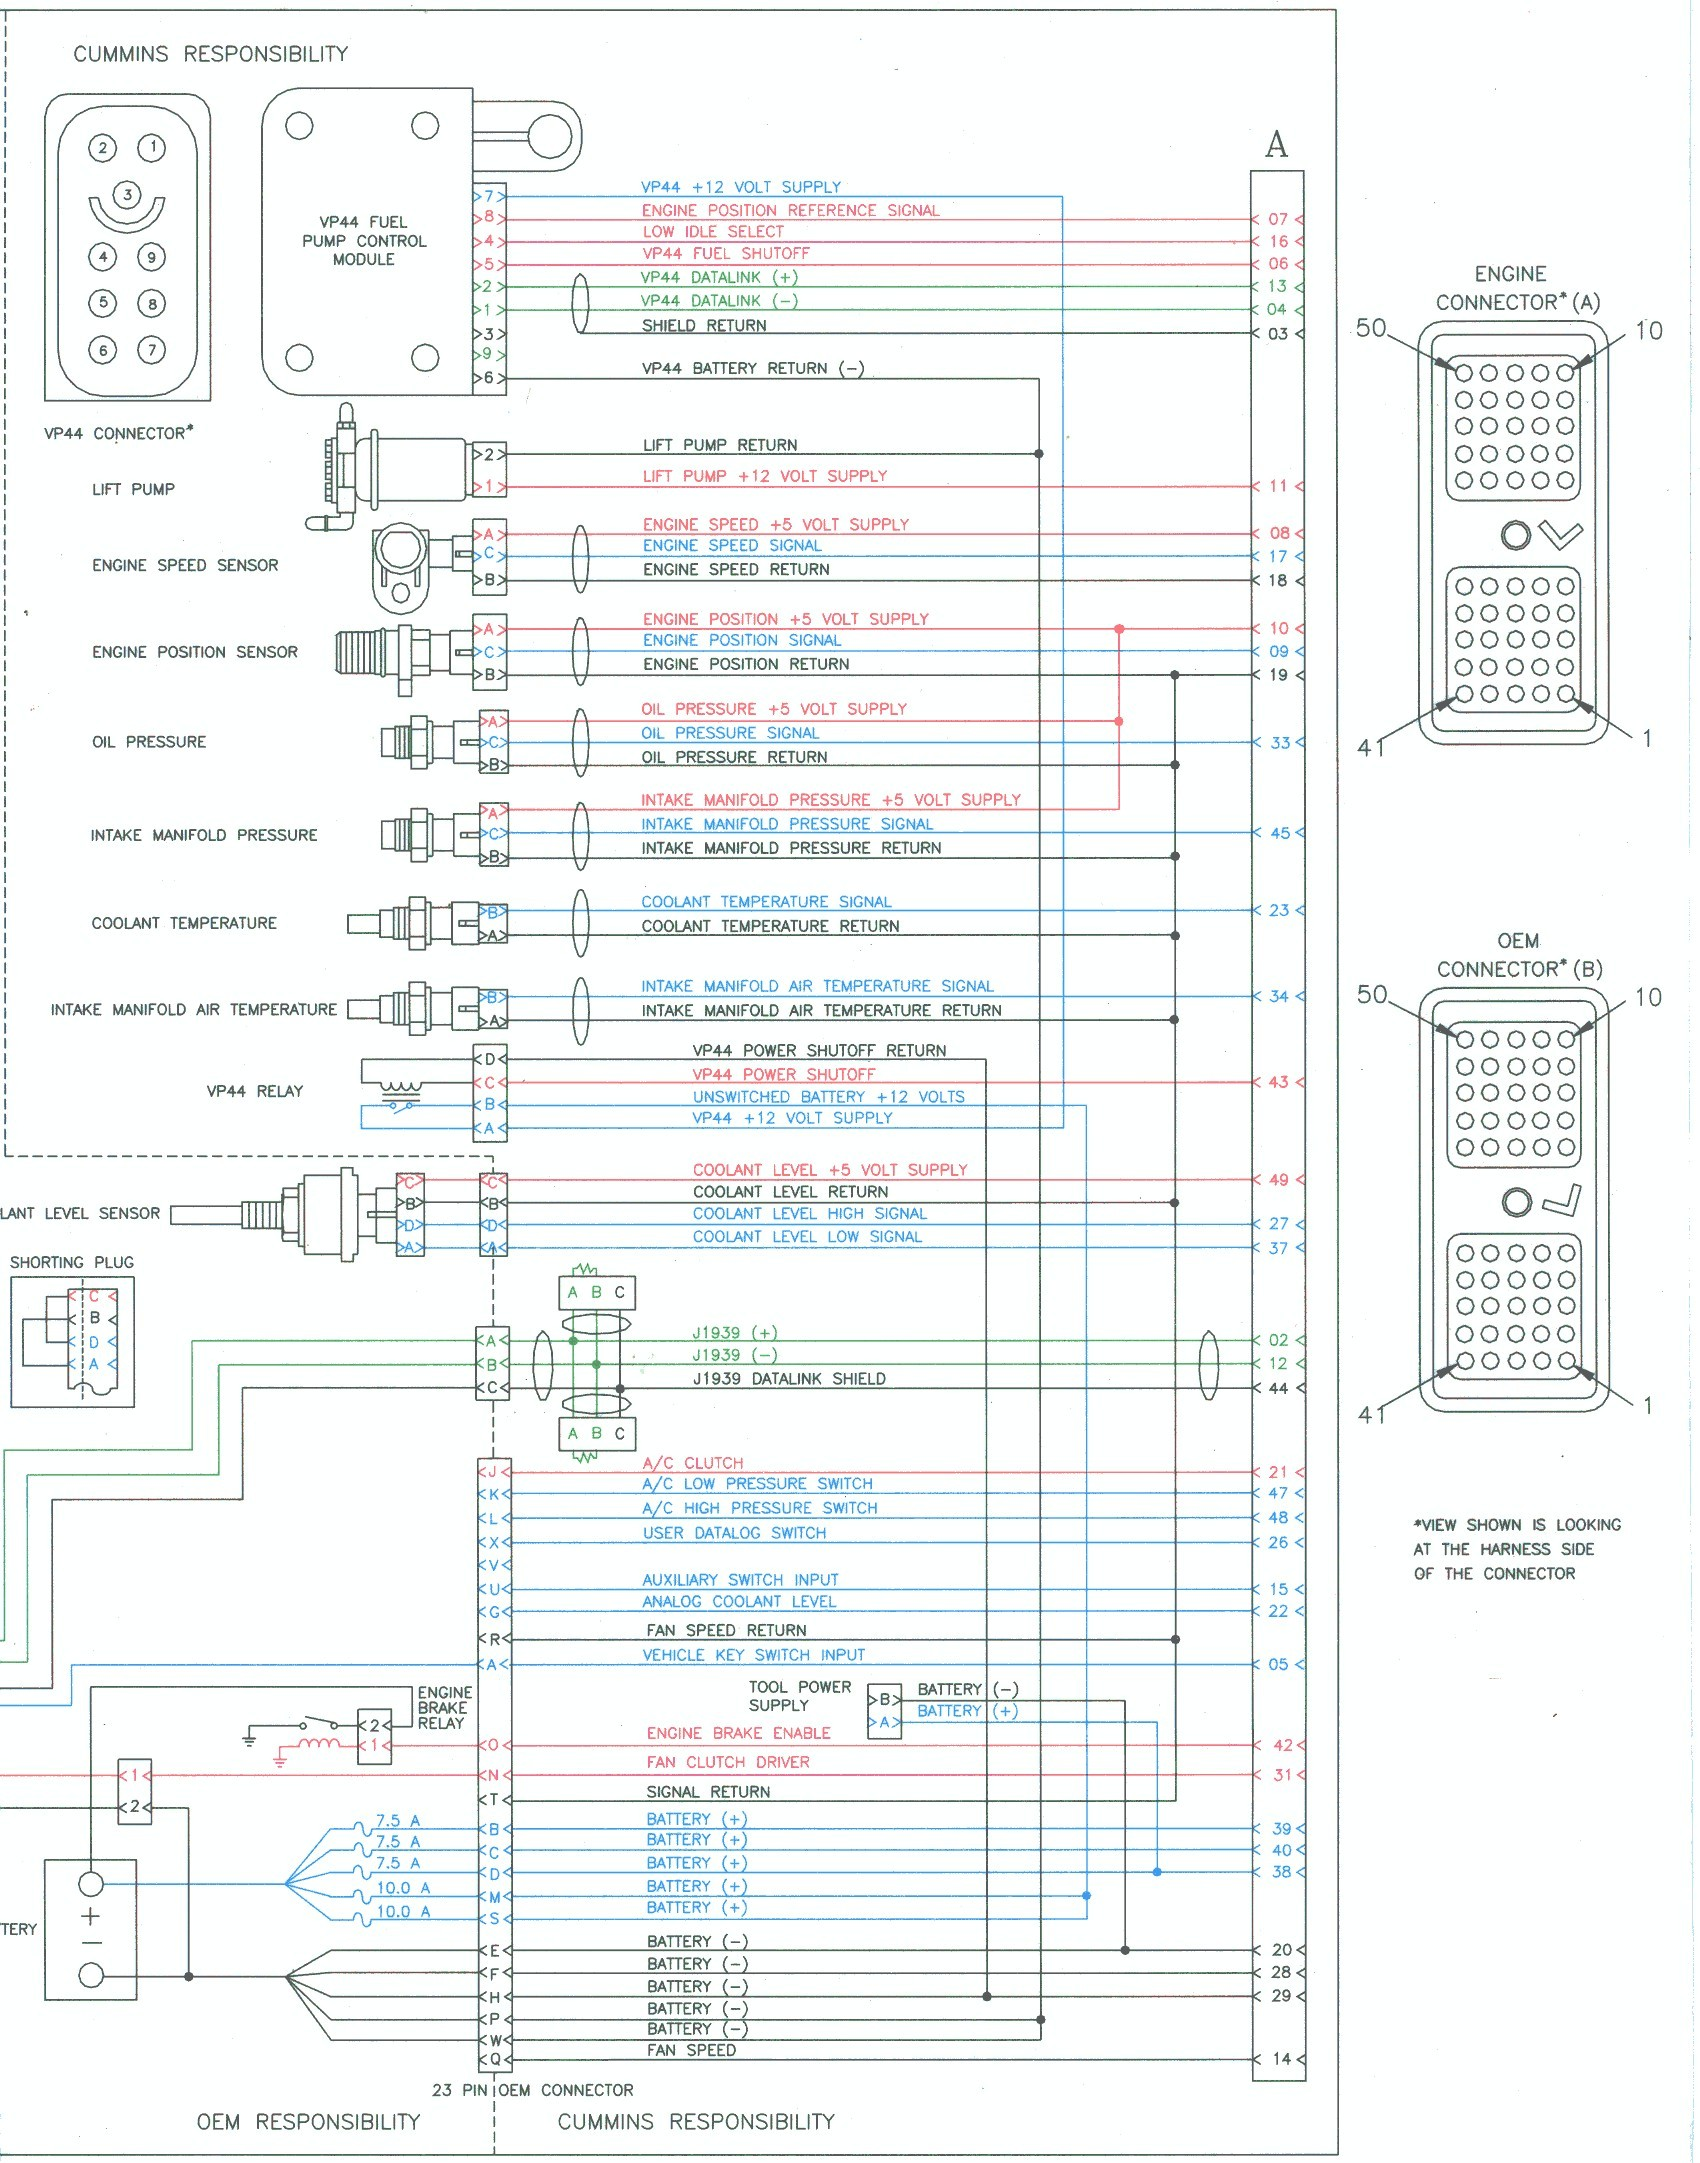 hight resolution of  glow plug relay wiring diagram best chevy 6 5 9 cummins engine diagram 2 2005 dodge cummins ecm wiring diagram sample of 5 9